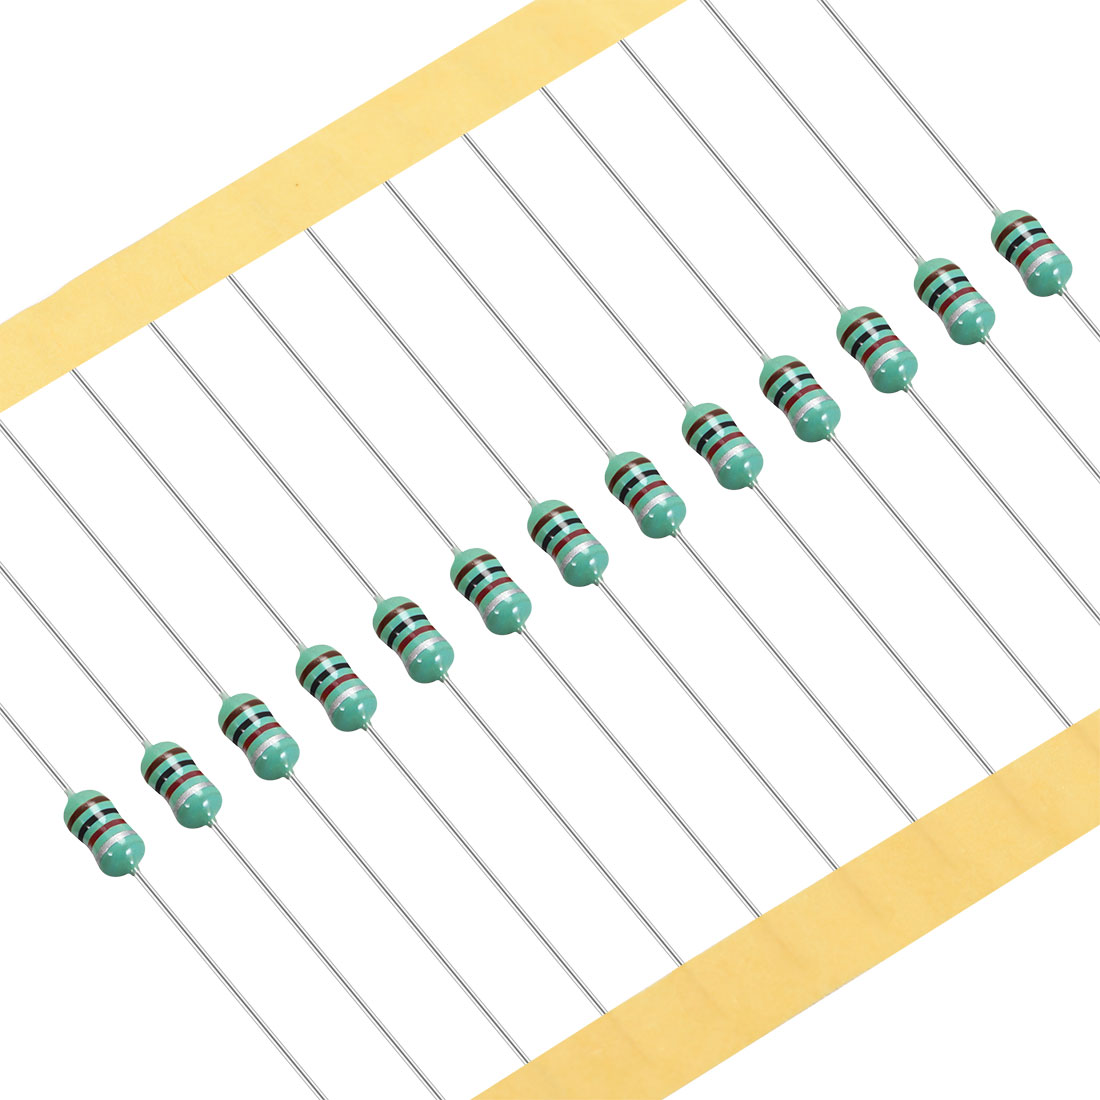 25Pcs 0307 Color Ring Inductor 1000uH 0.5W Axial RF Choke Coil Inductor